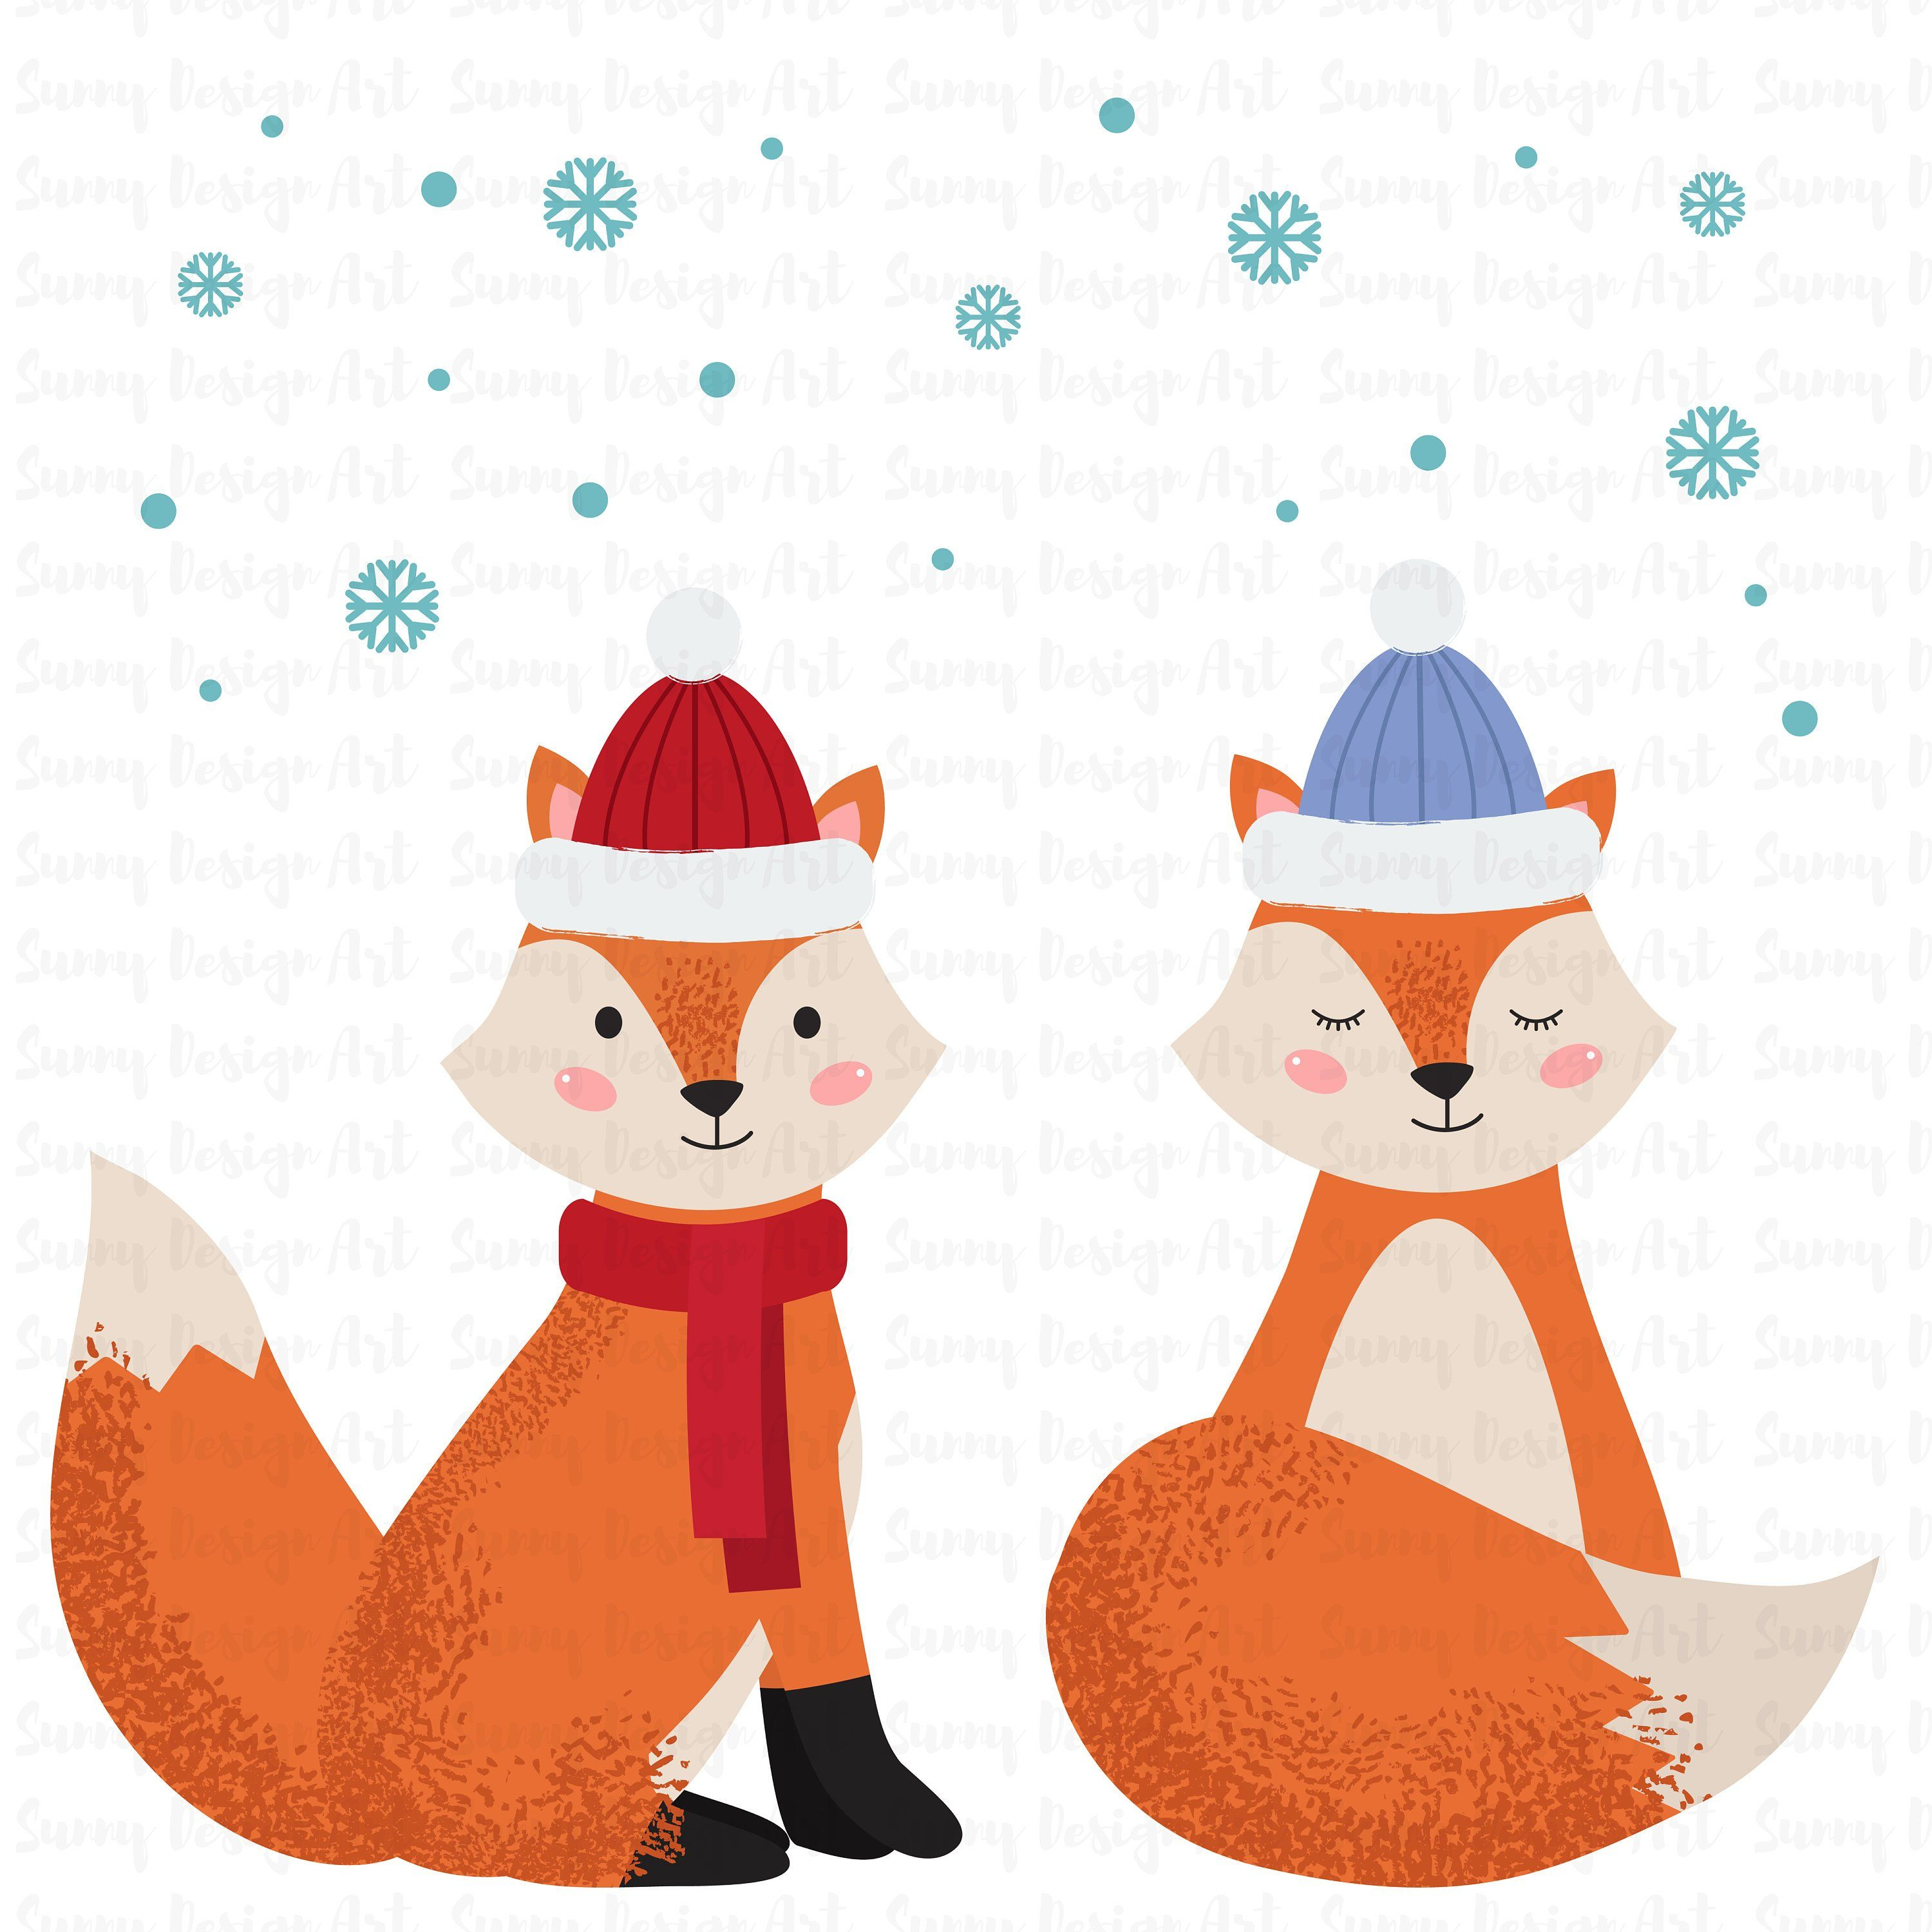 Winter Animals Clipart Cute Forest Animals Vector Woodland Clipart Christmas Animals Vector Holiday Animal Clip Art Instant Download Animal Clipart Christmas Animals Clip Art